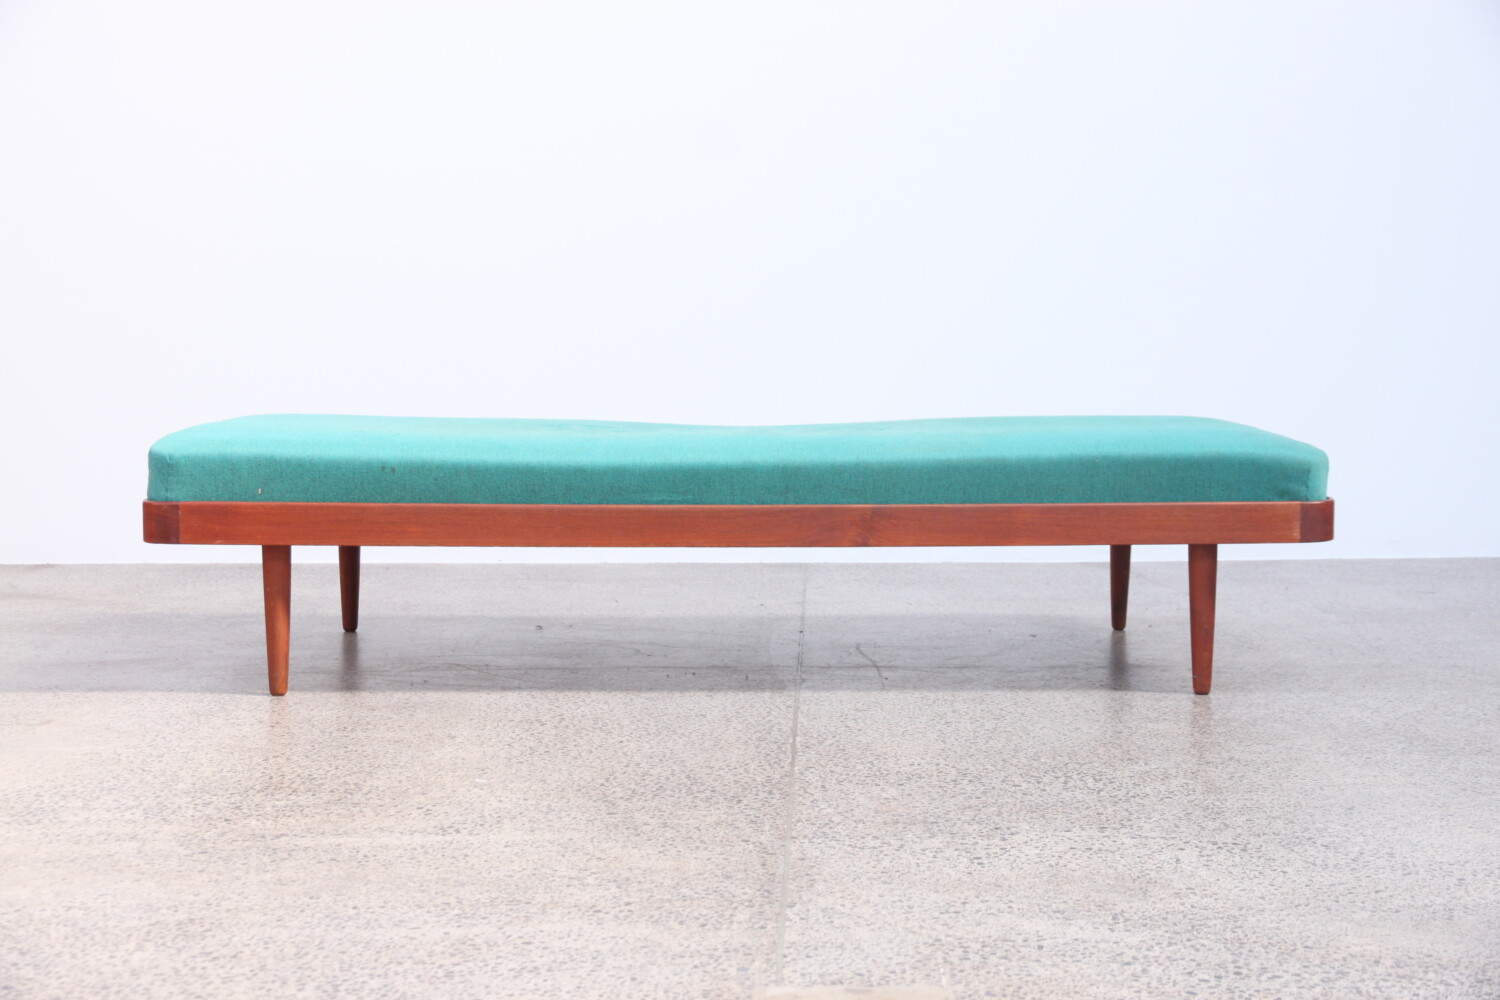 Teak Daybed by Horsnaes sold